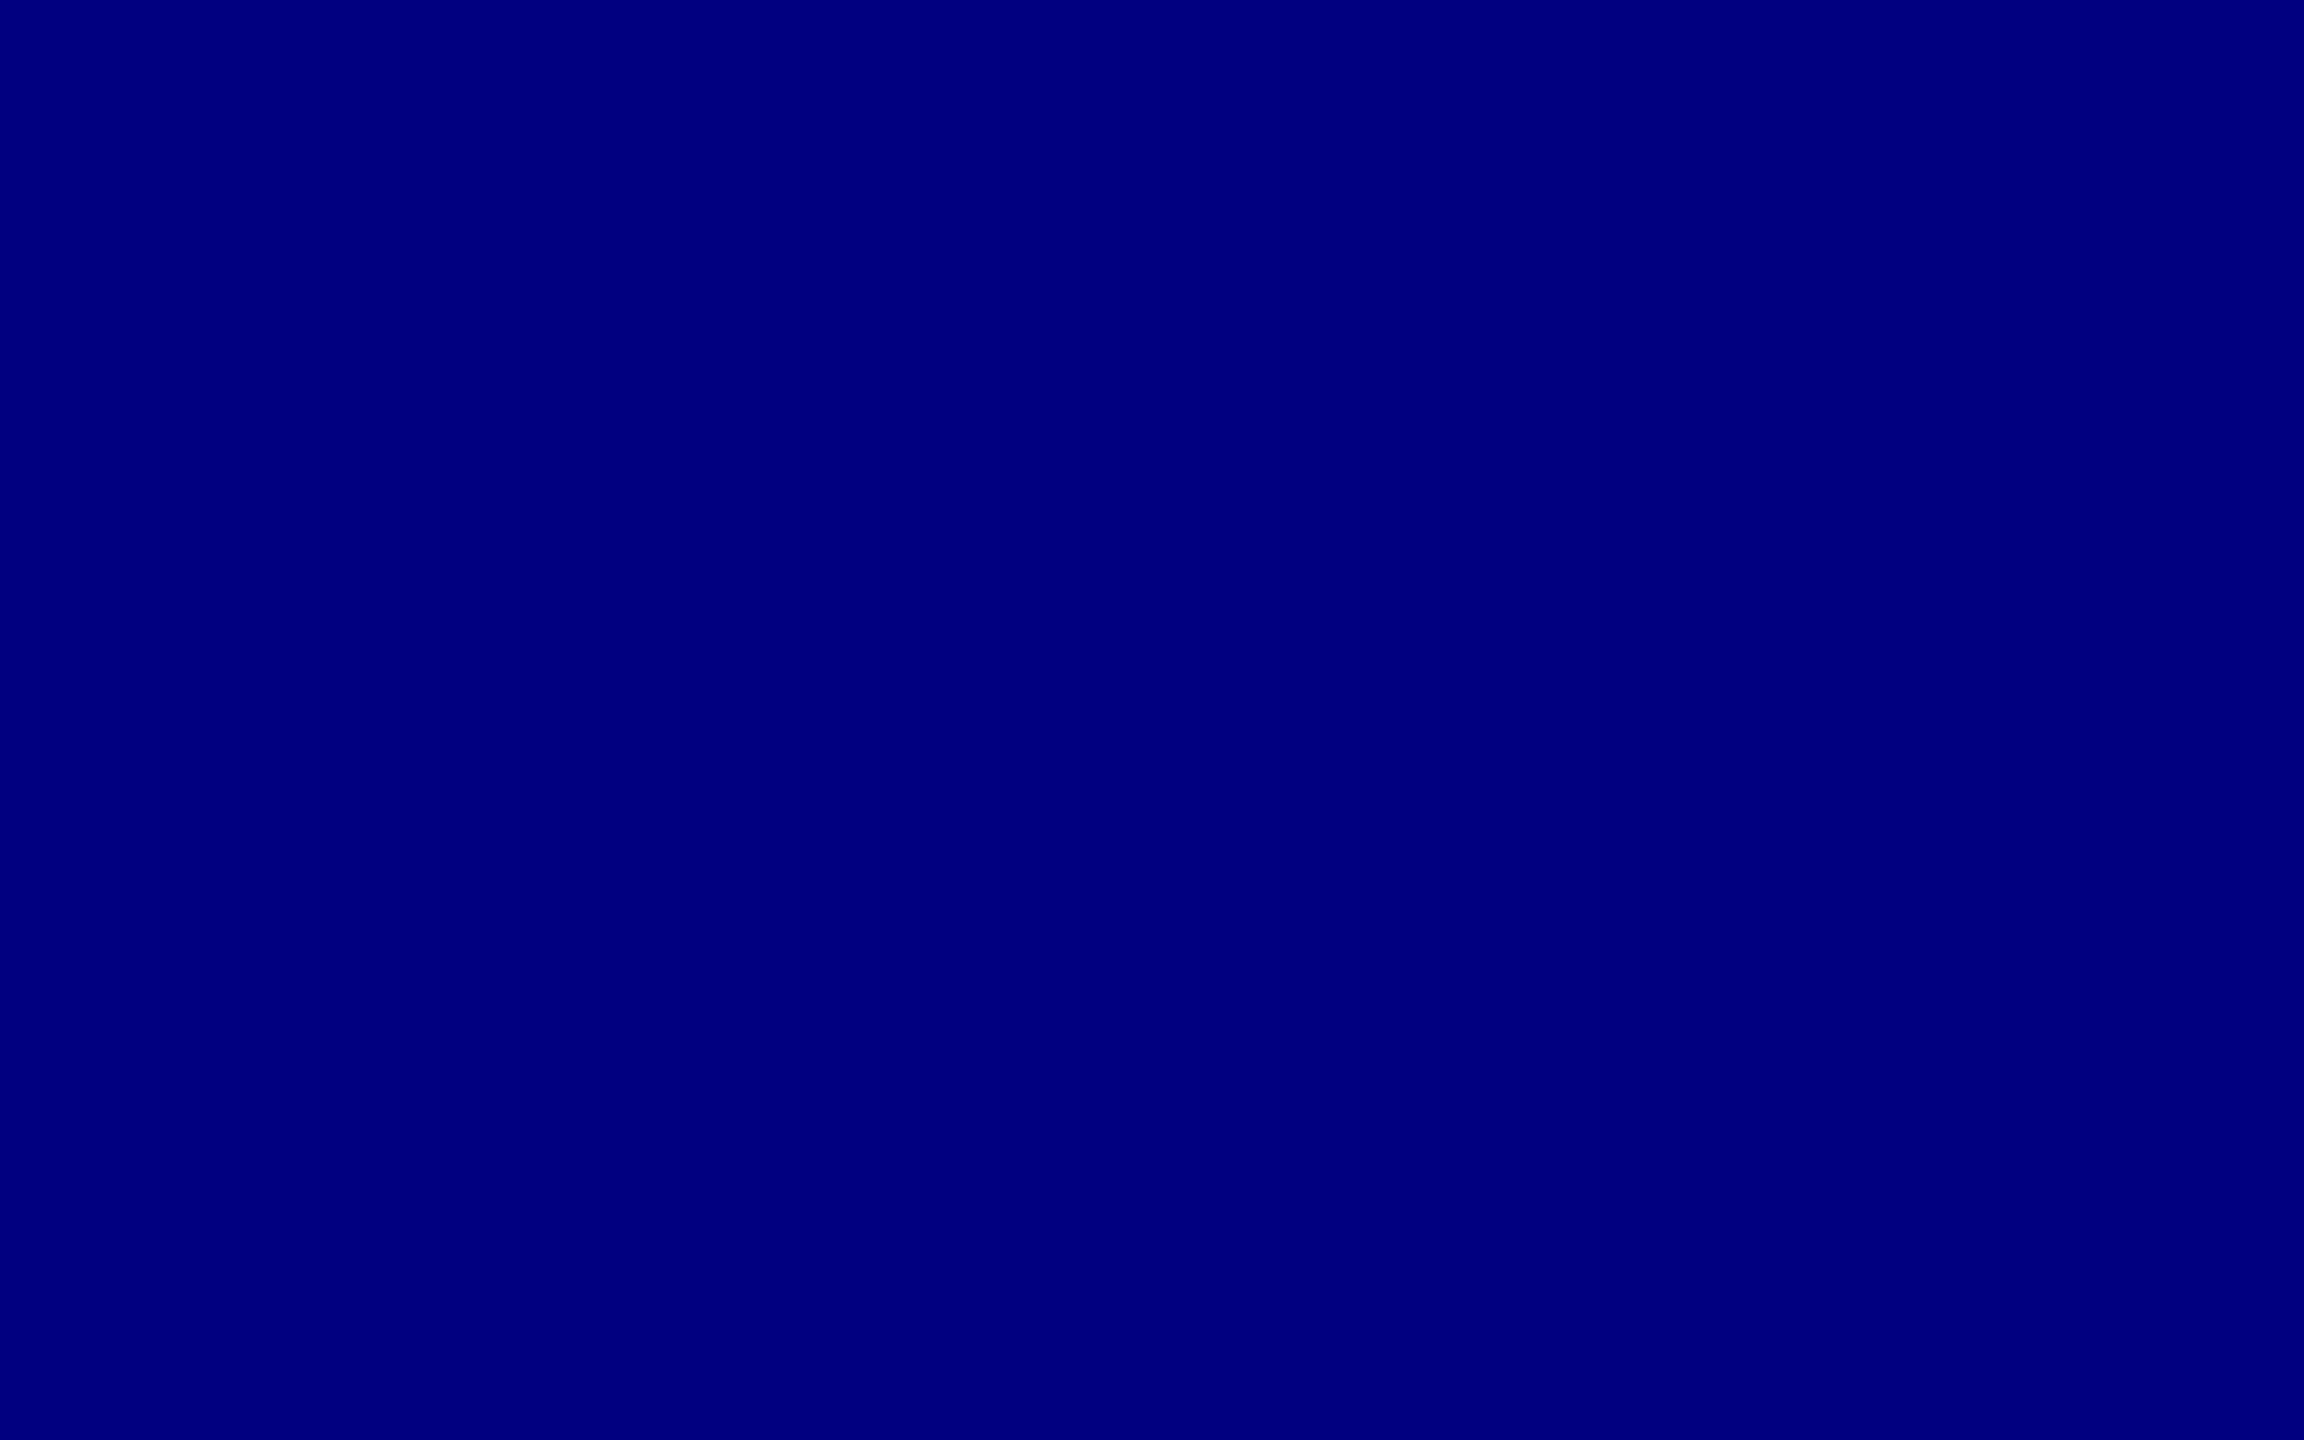 2304x1440 Navy Blue Solid Color Background